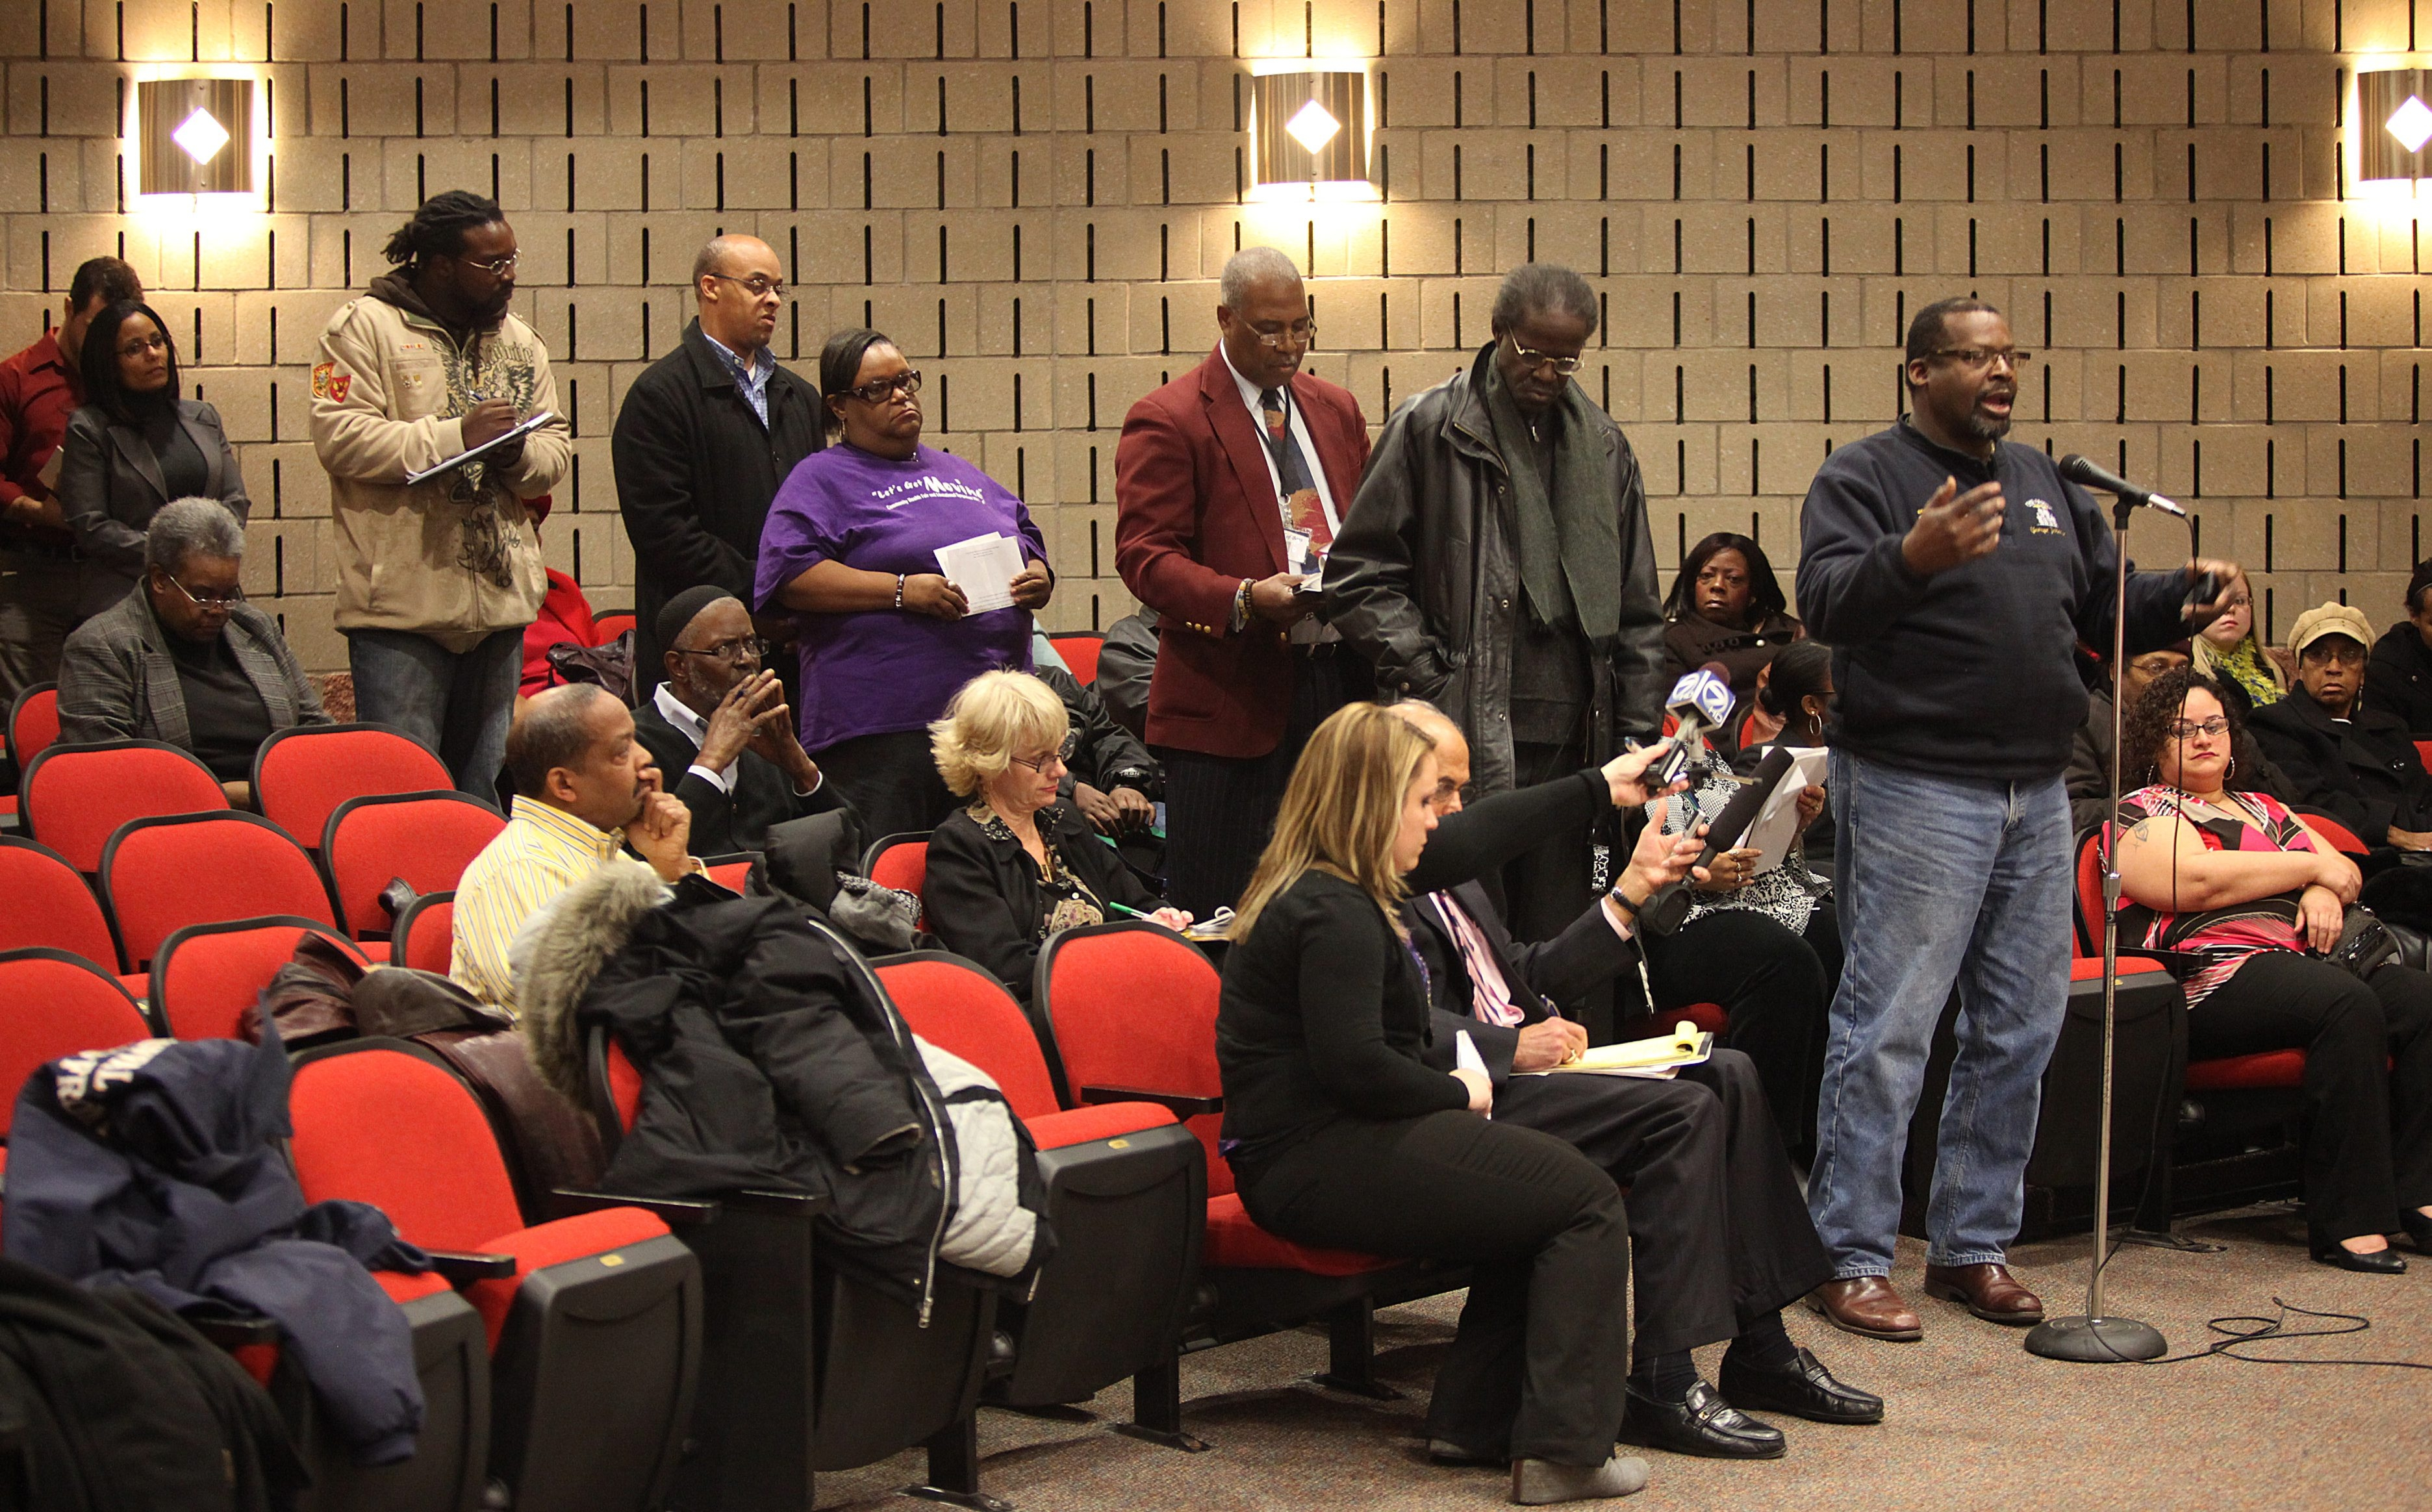 This file photo shows a line of people waiting to speak at an advisory board hearing on school suspensions in the Buffalo Public Schools, at Merriweather Library in Buffalo in 2012.